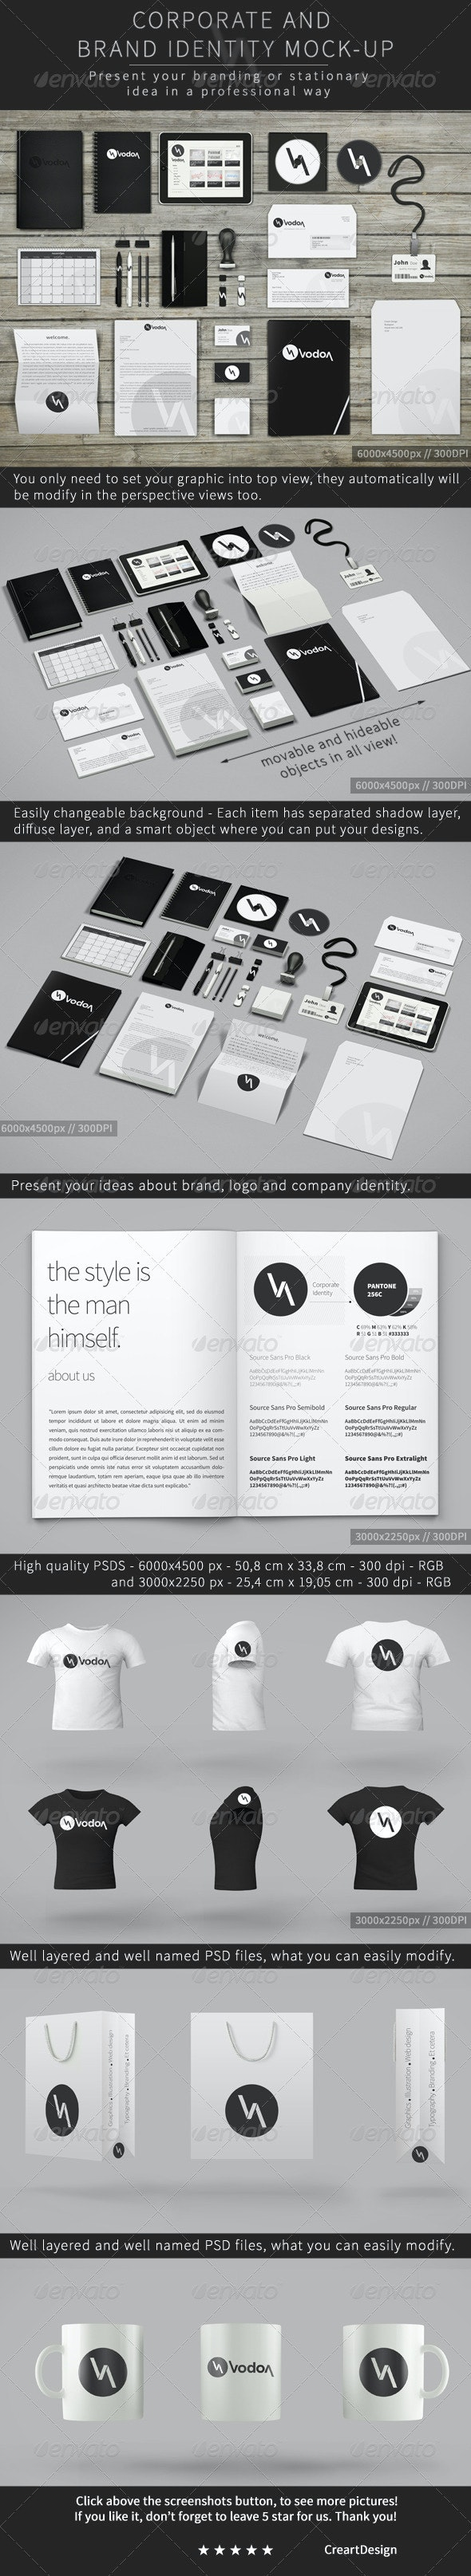 Corporate and Brand Identity Mock-Up for Photoshop - Stationery Print